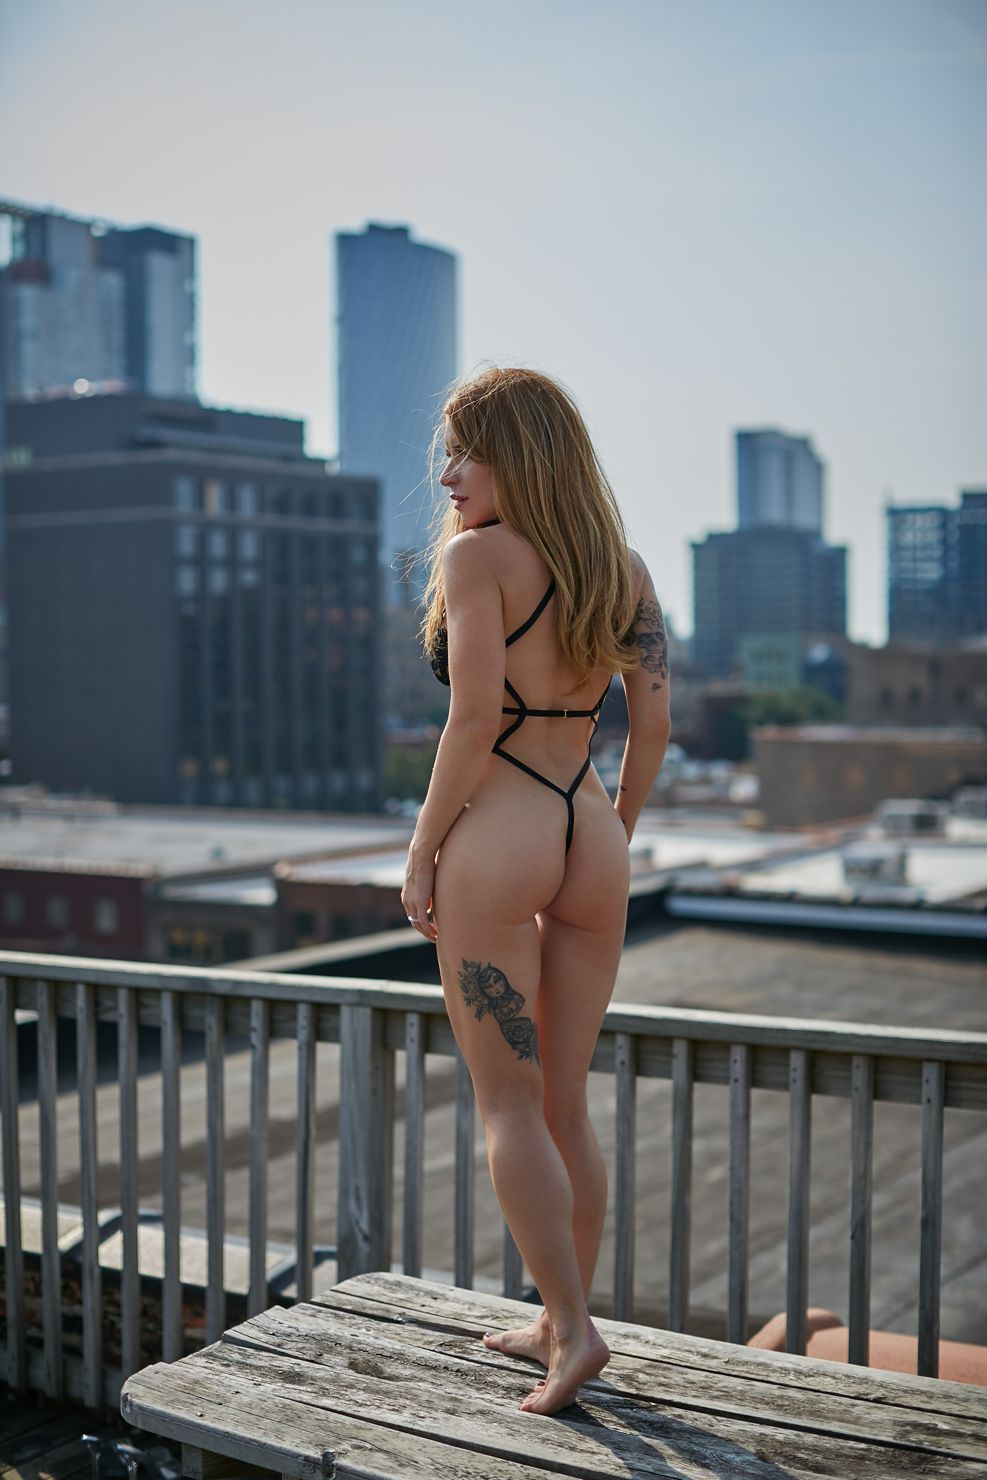 outdoor boudoir photography chicago - Chicago Fitness Boudoir. Another reveal of intimate photography.